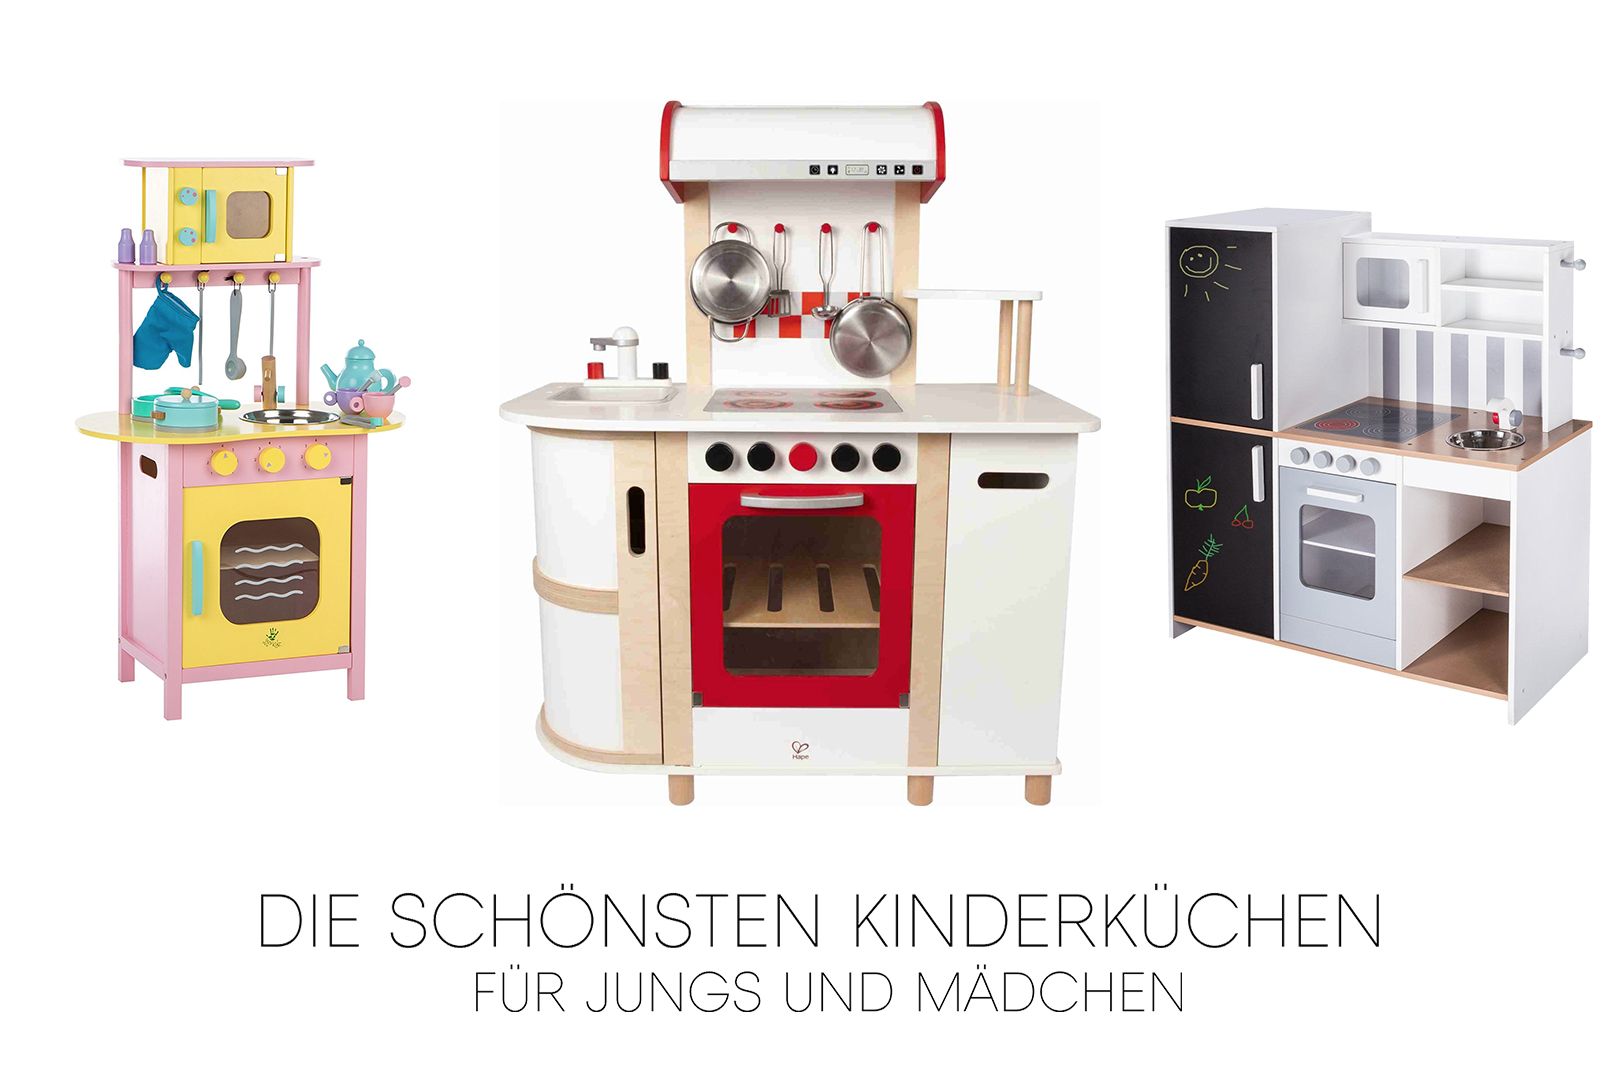 die sch nsten kinderk chen f r m dchen und jungen. Black Bedroom Furniture Sets. Home Design Ideas